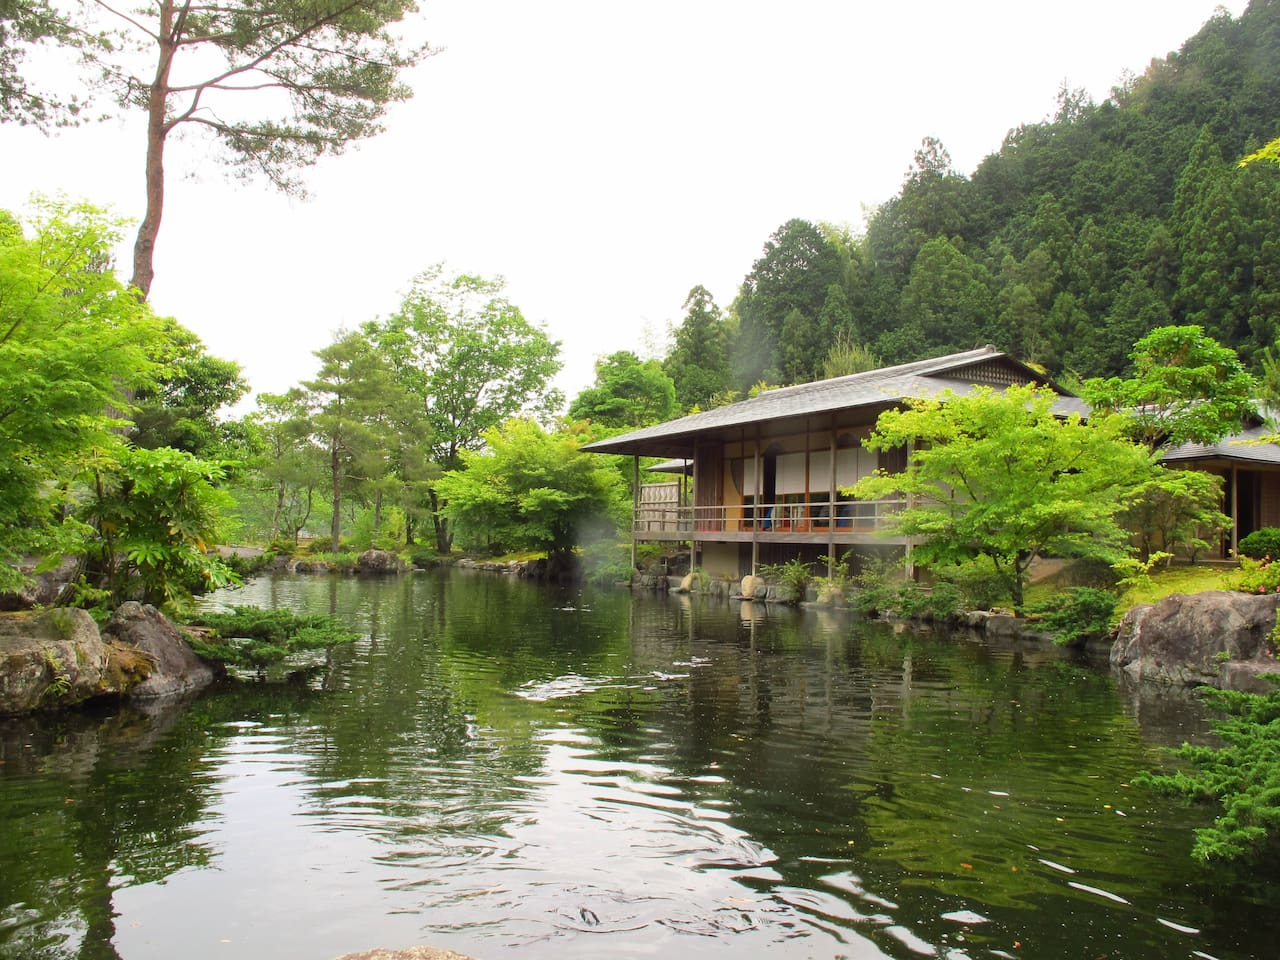 Green Tea ceremony - Traditional Garden and Traditional Japanese Architecture.